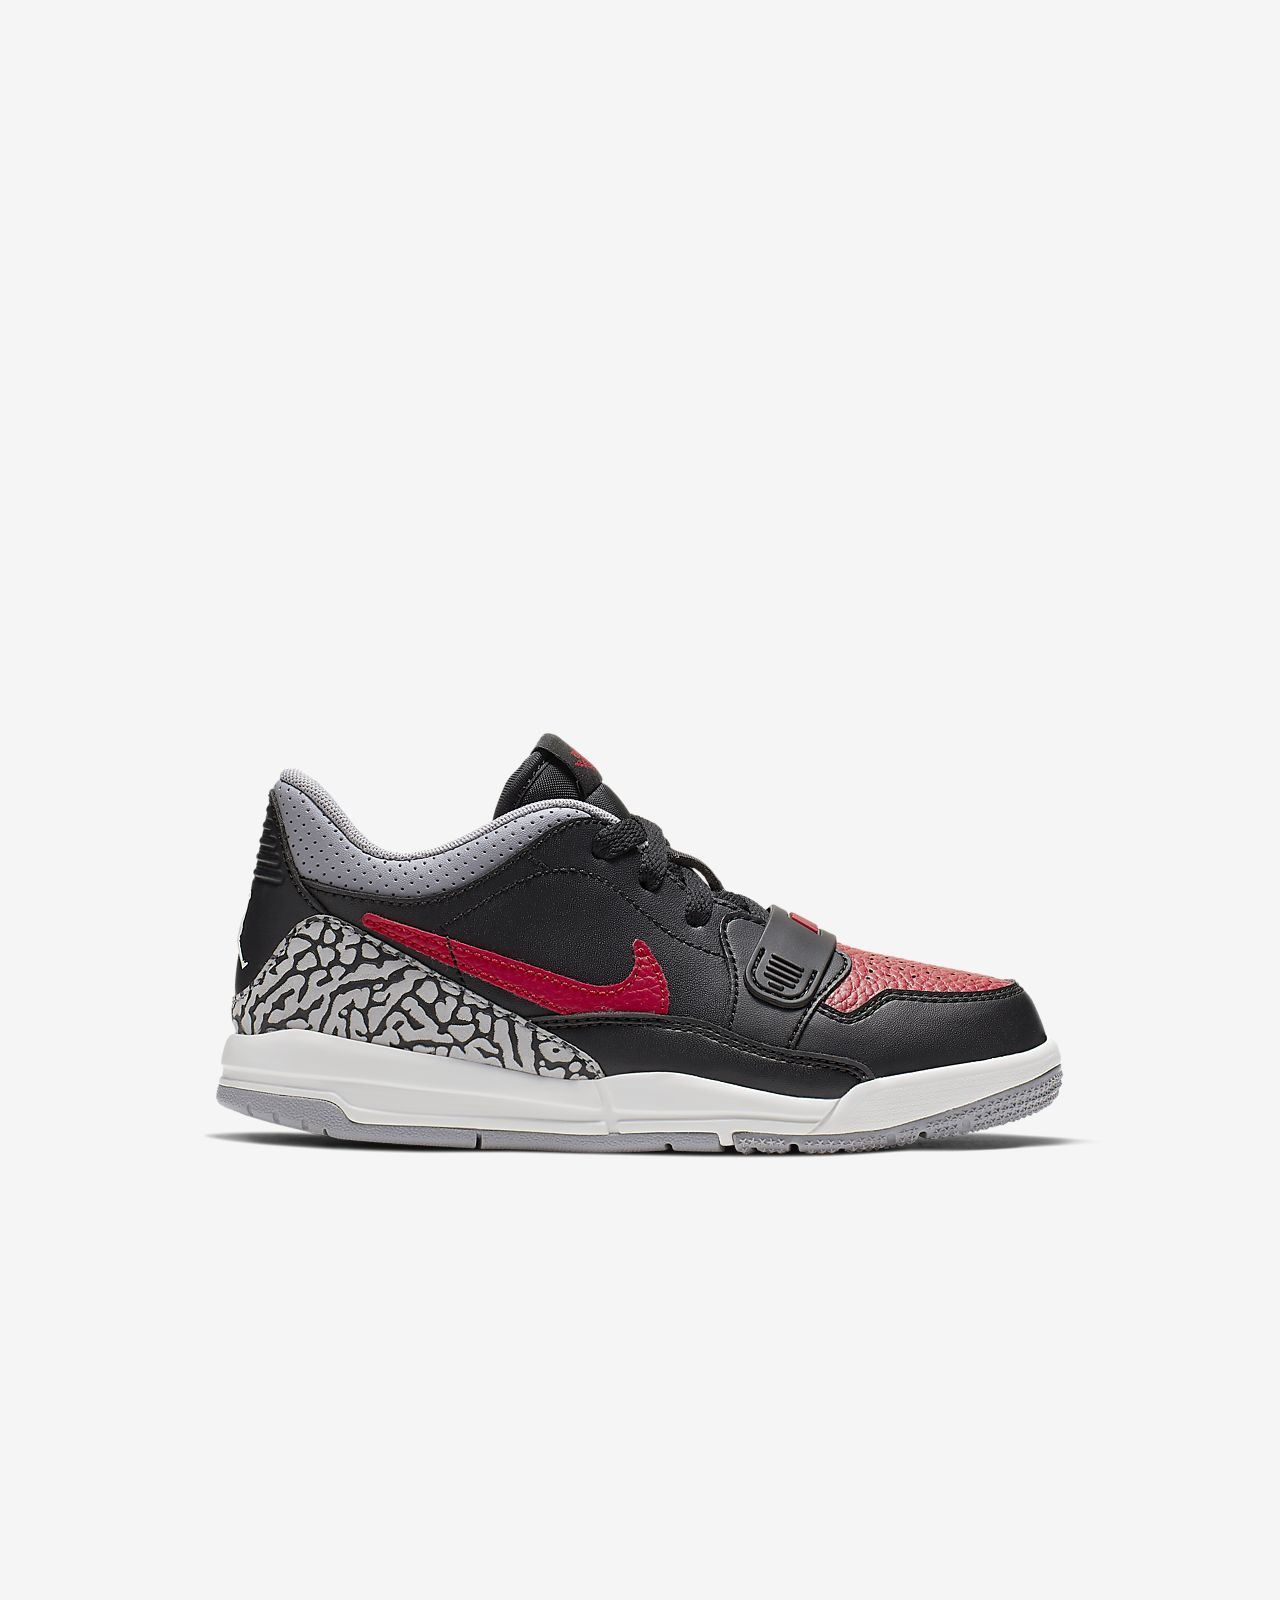 Air Jordan Legacy 312 Low Kleuterschoen